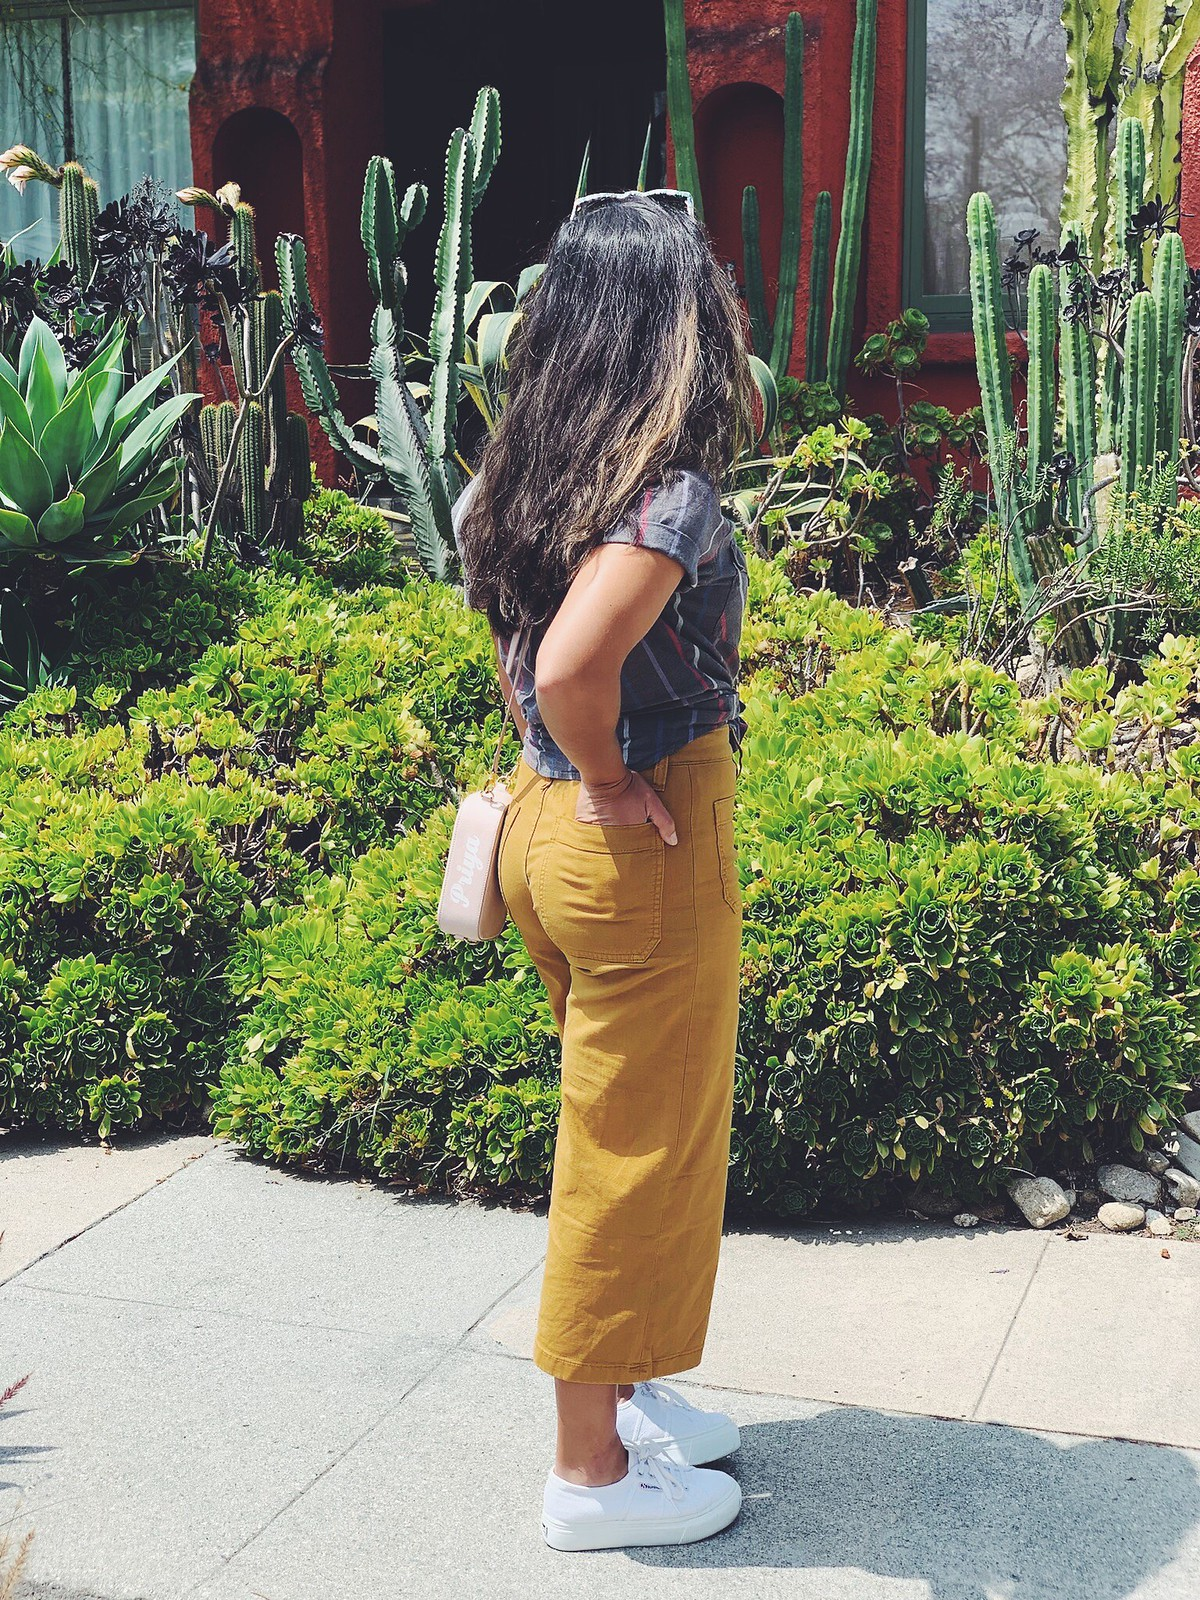 Priya the Blog, Nashville fashion blog, Nashville fashion blogger, Nashville style blog, Nashville style blogger, J. Crew Point Sur Crops, platform Supergas, Summer outfit, Summer outfit in LA, ColourPop LA Lady, casual Summer outfit